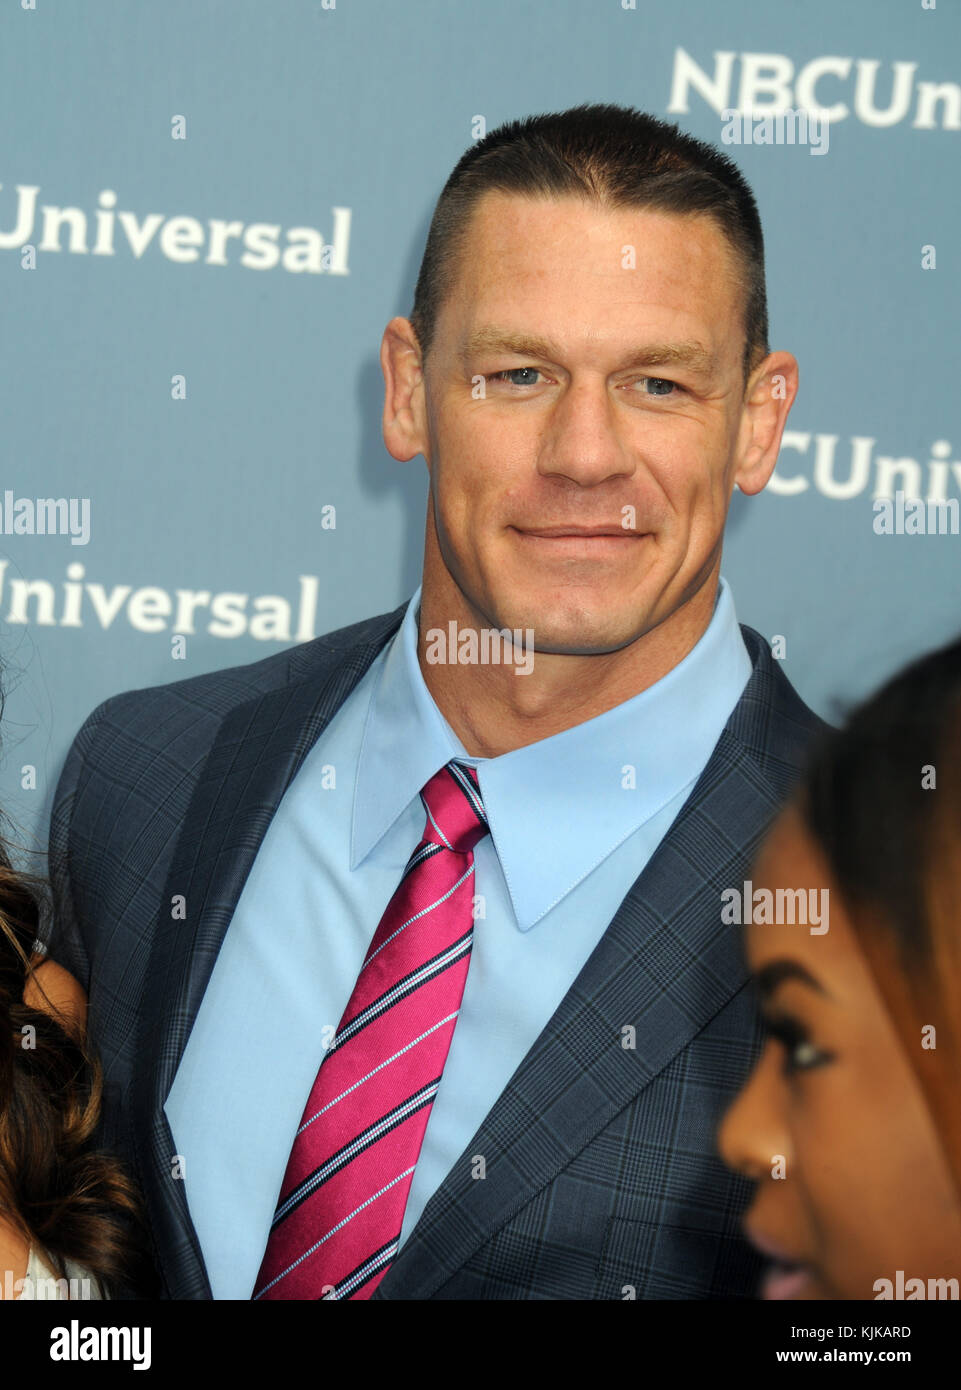 John cena 2016 stock photos john cena 2016 stock images alamy new york ny may 16 john cena attends the nbcuniversal 2016 upfront on kristyandbryce Choice Image